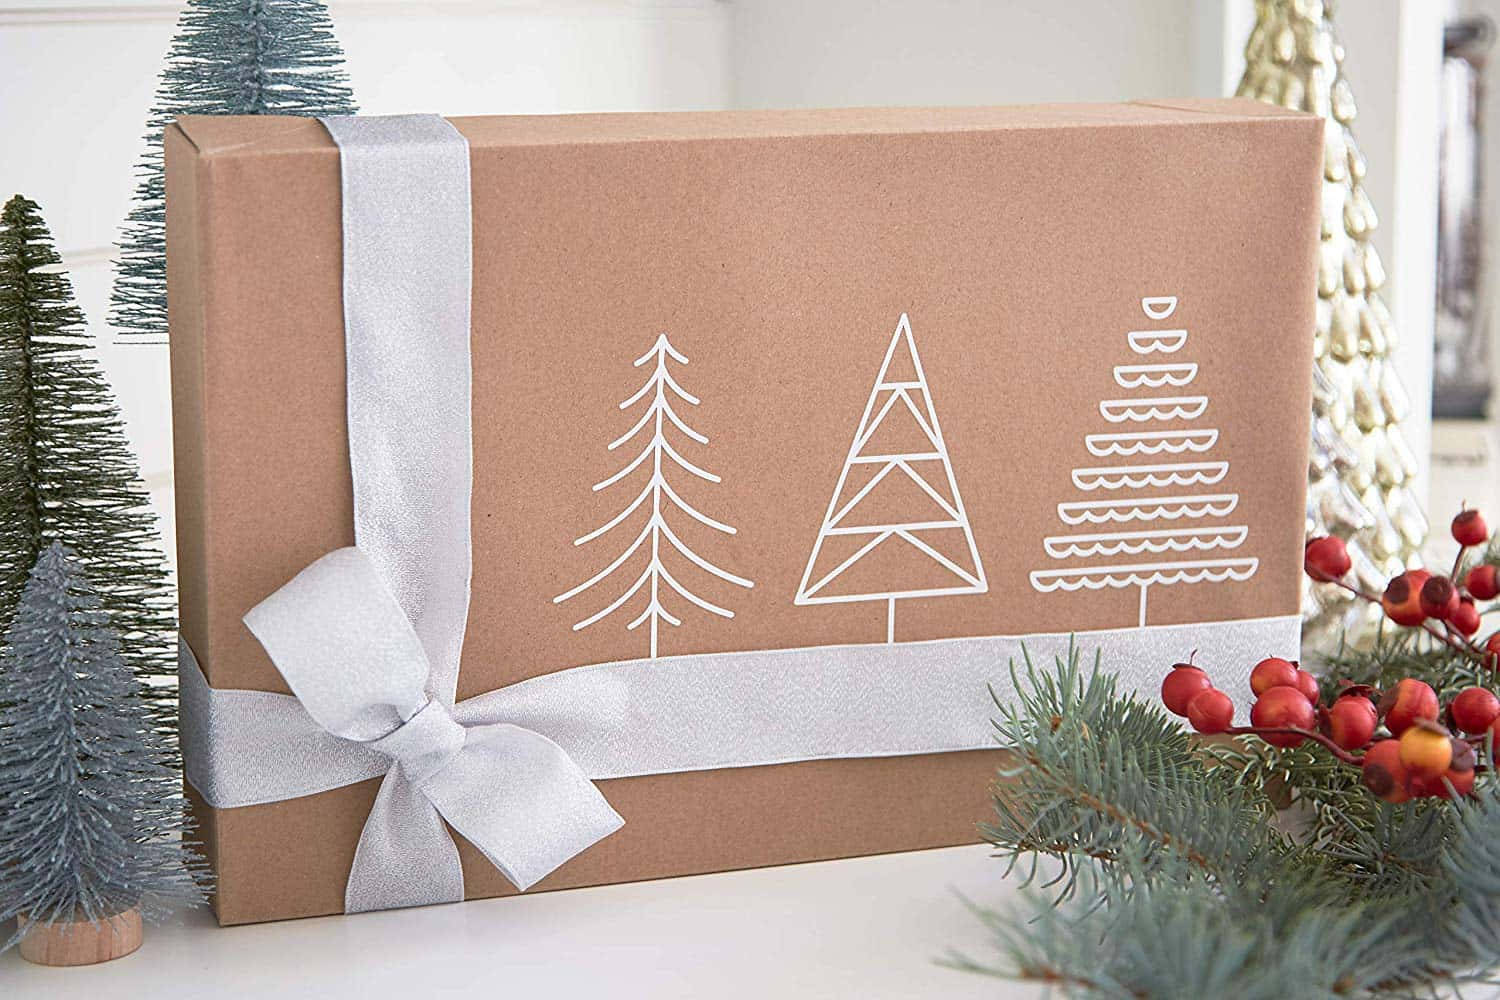 Create your own designs and decorate Christmas presents with a Cricut Explore Air 2 on sale.